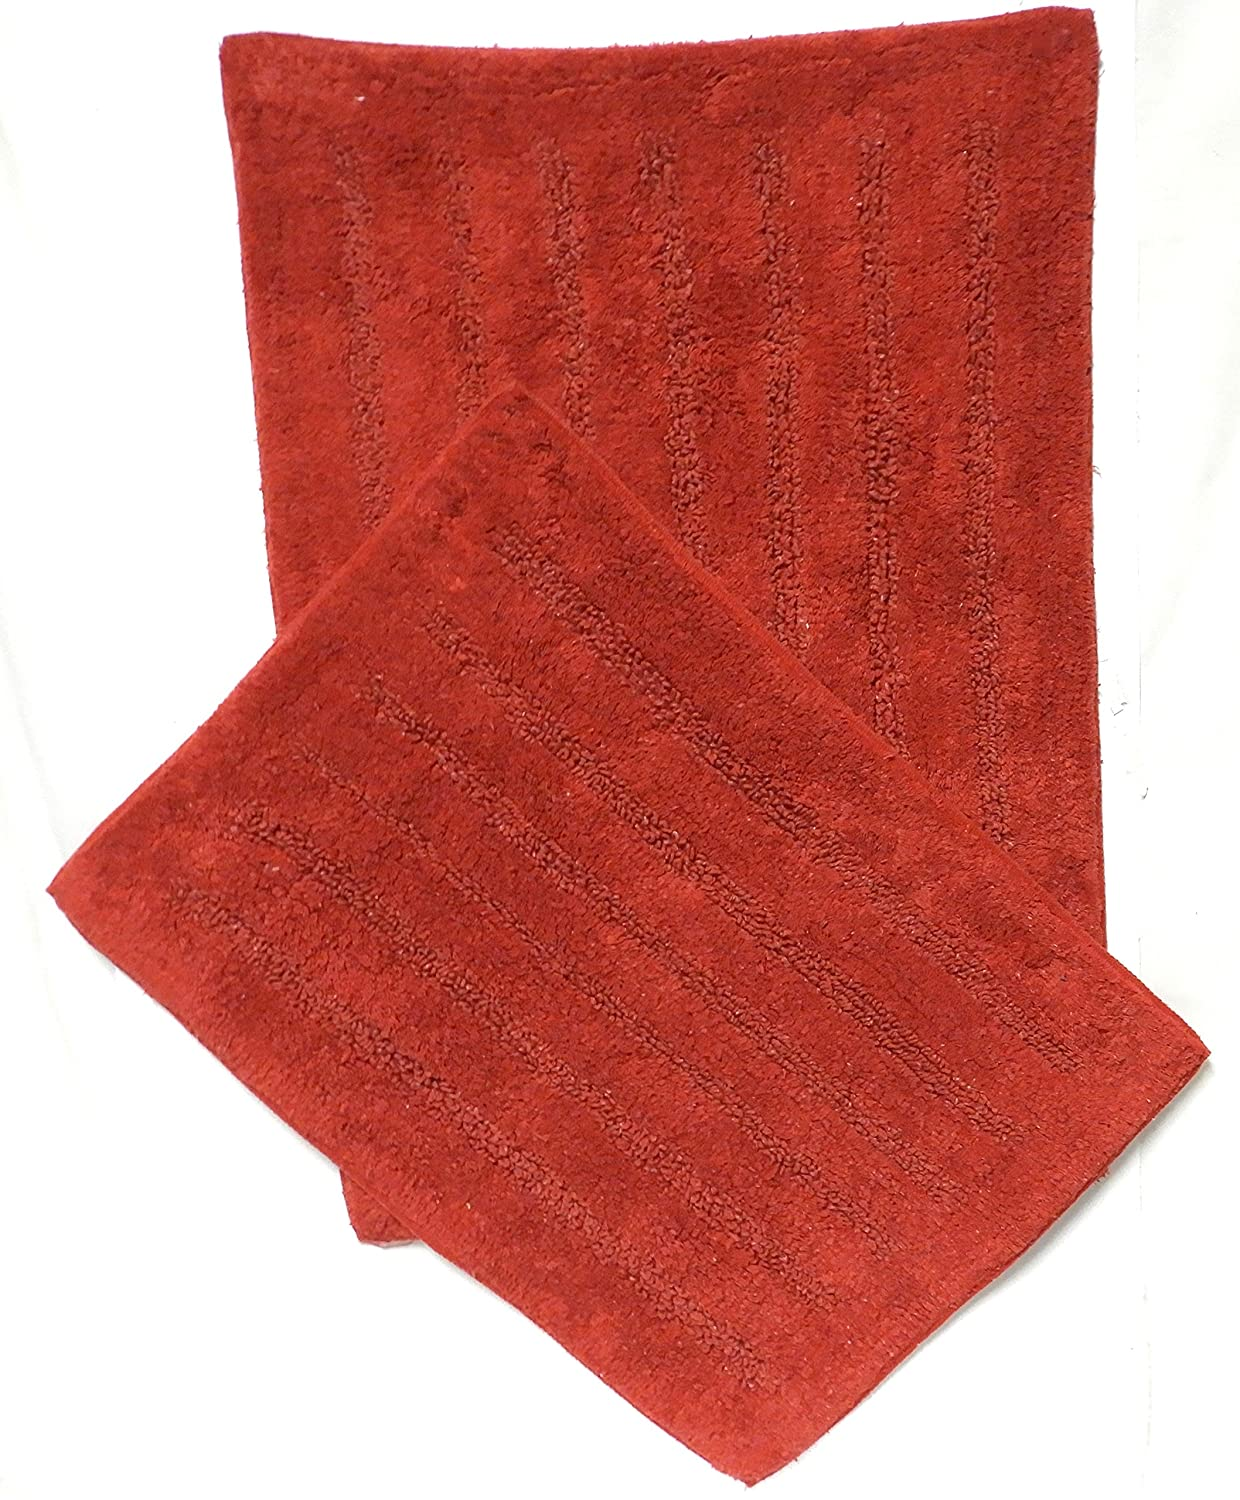 DINY Home & Style 2 Piece 100% Cotton Bath Rug Set Bathroom Mat Ultra Absorbent Machine Washable Dark Red Dependable Industries inc